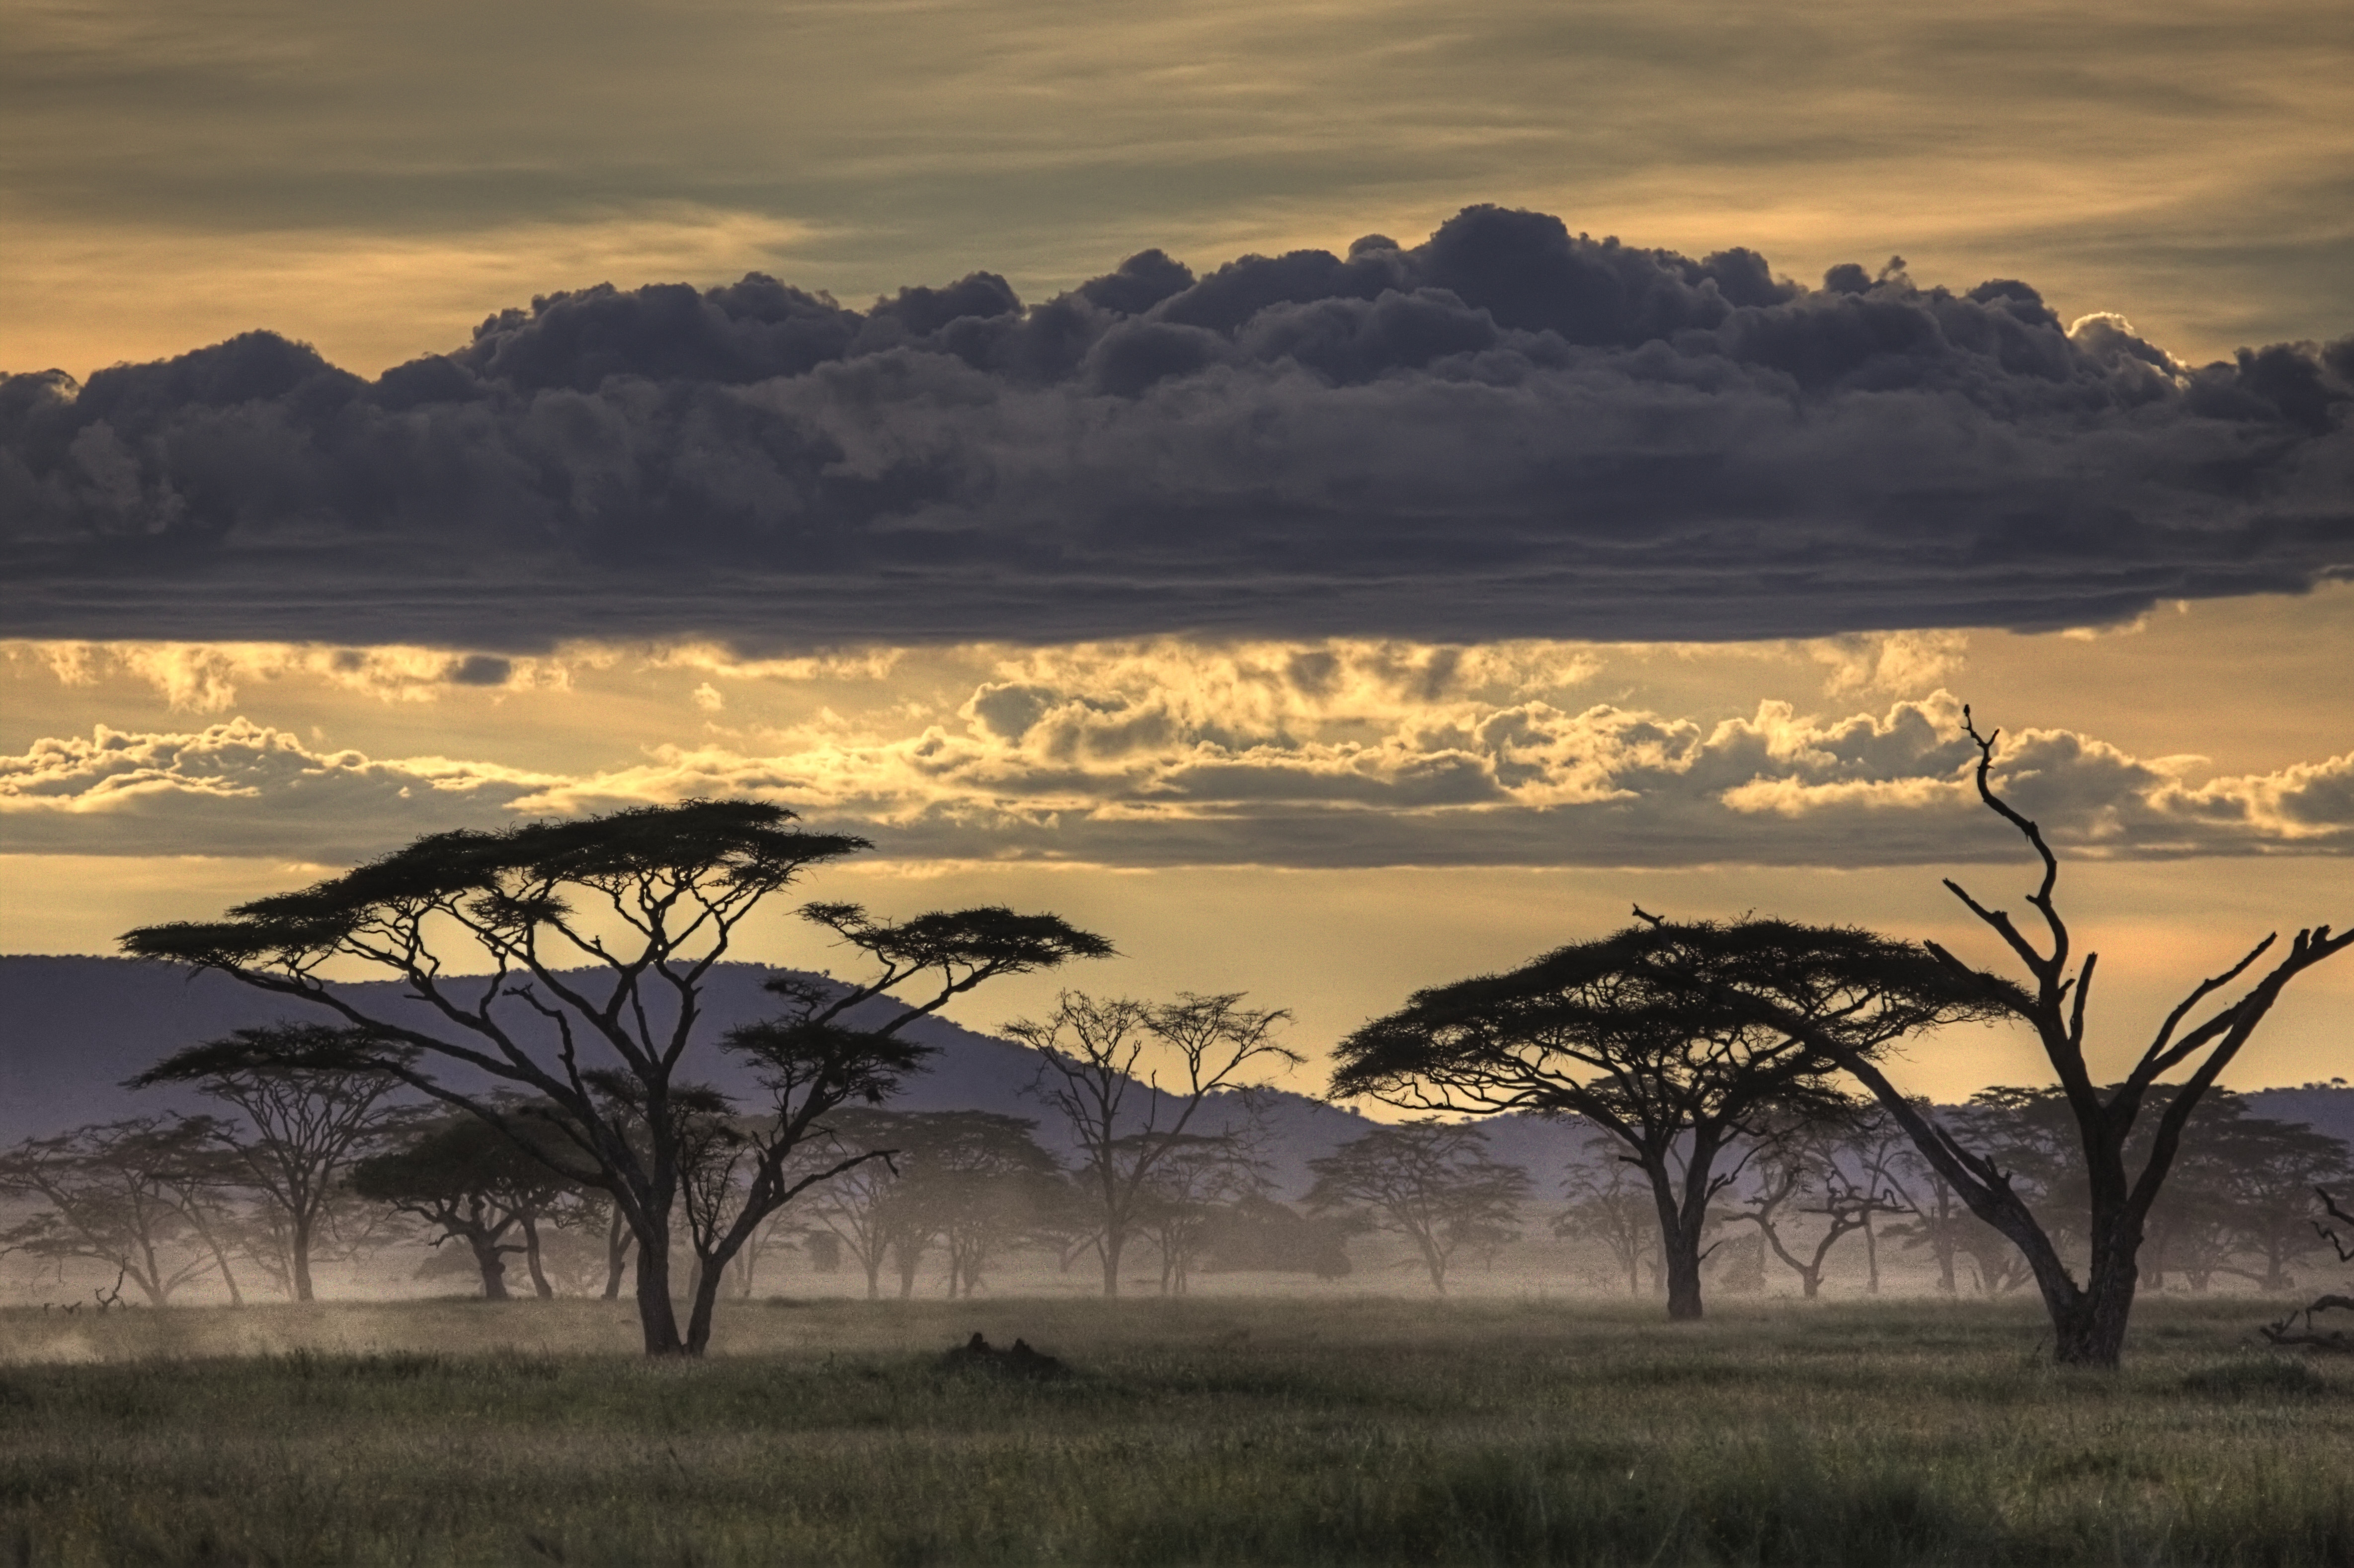 A picture of the African savanna.